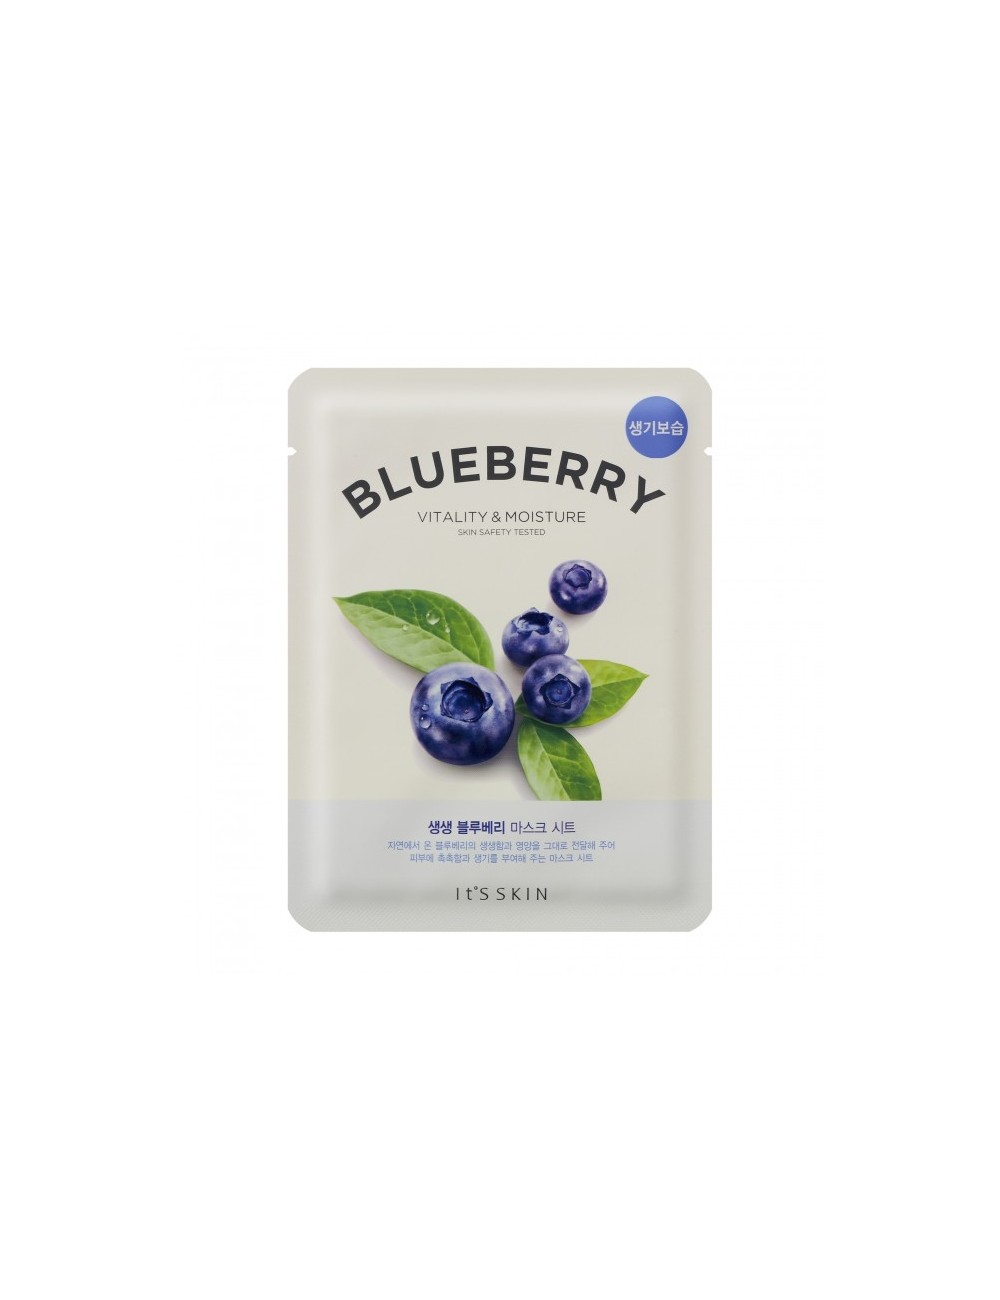 Mascarilla de Arandanos It's Skin - The Fresh Mask Sheet - Blueberry 20ml